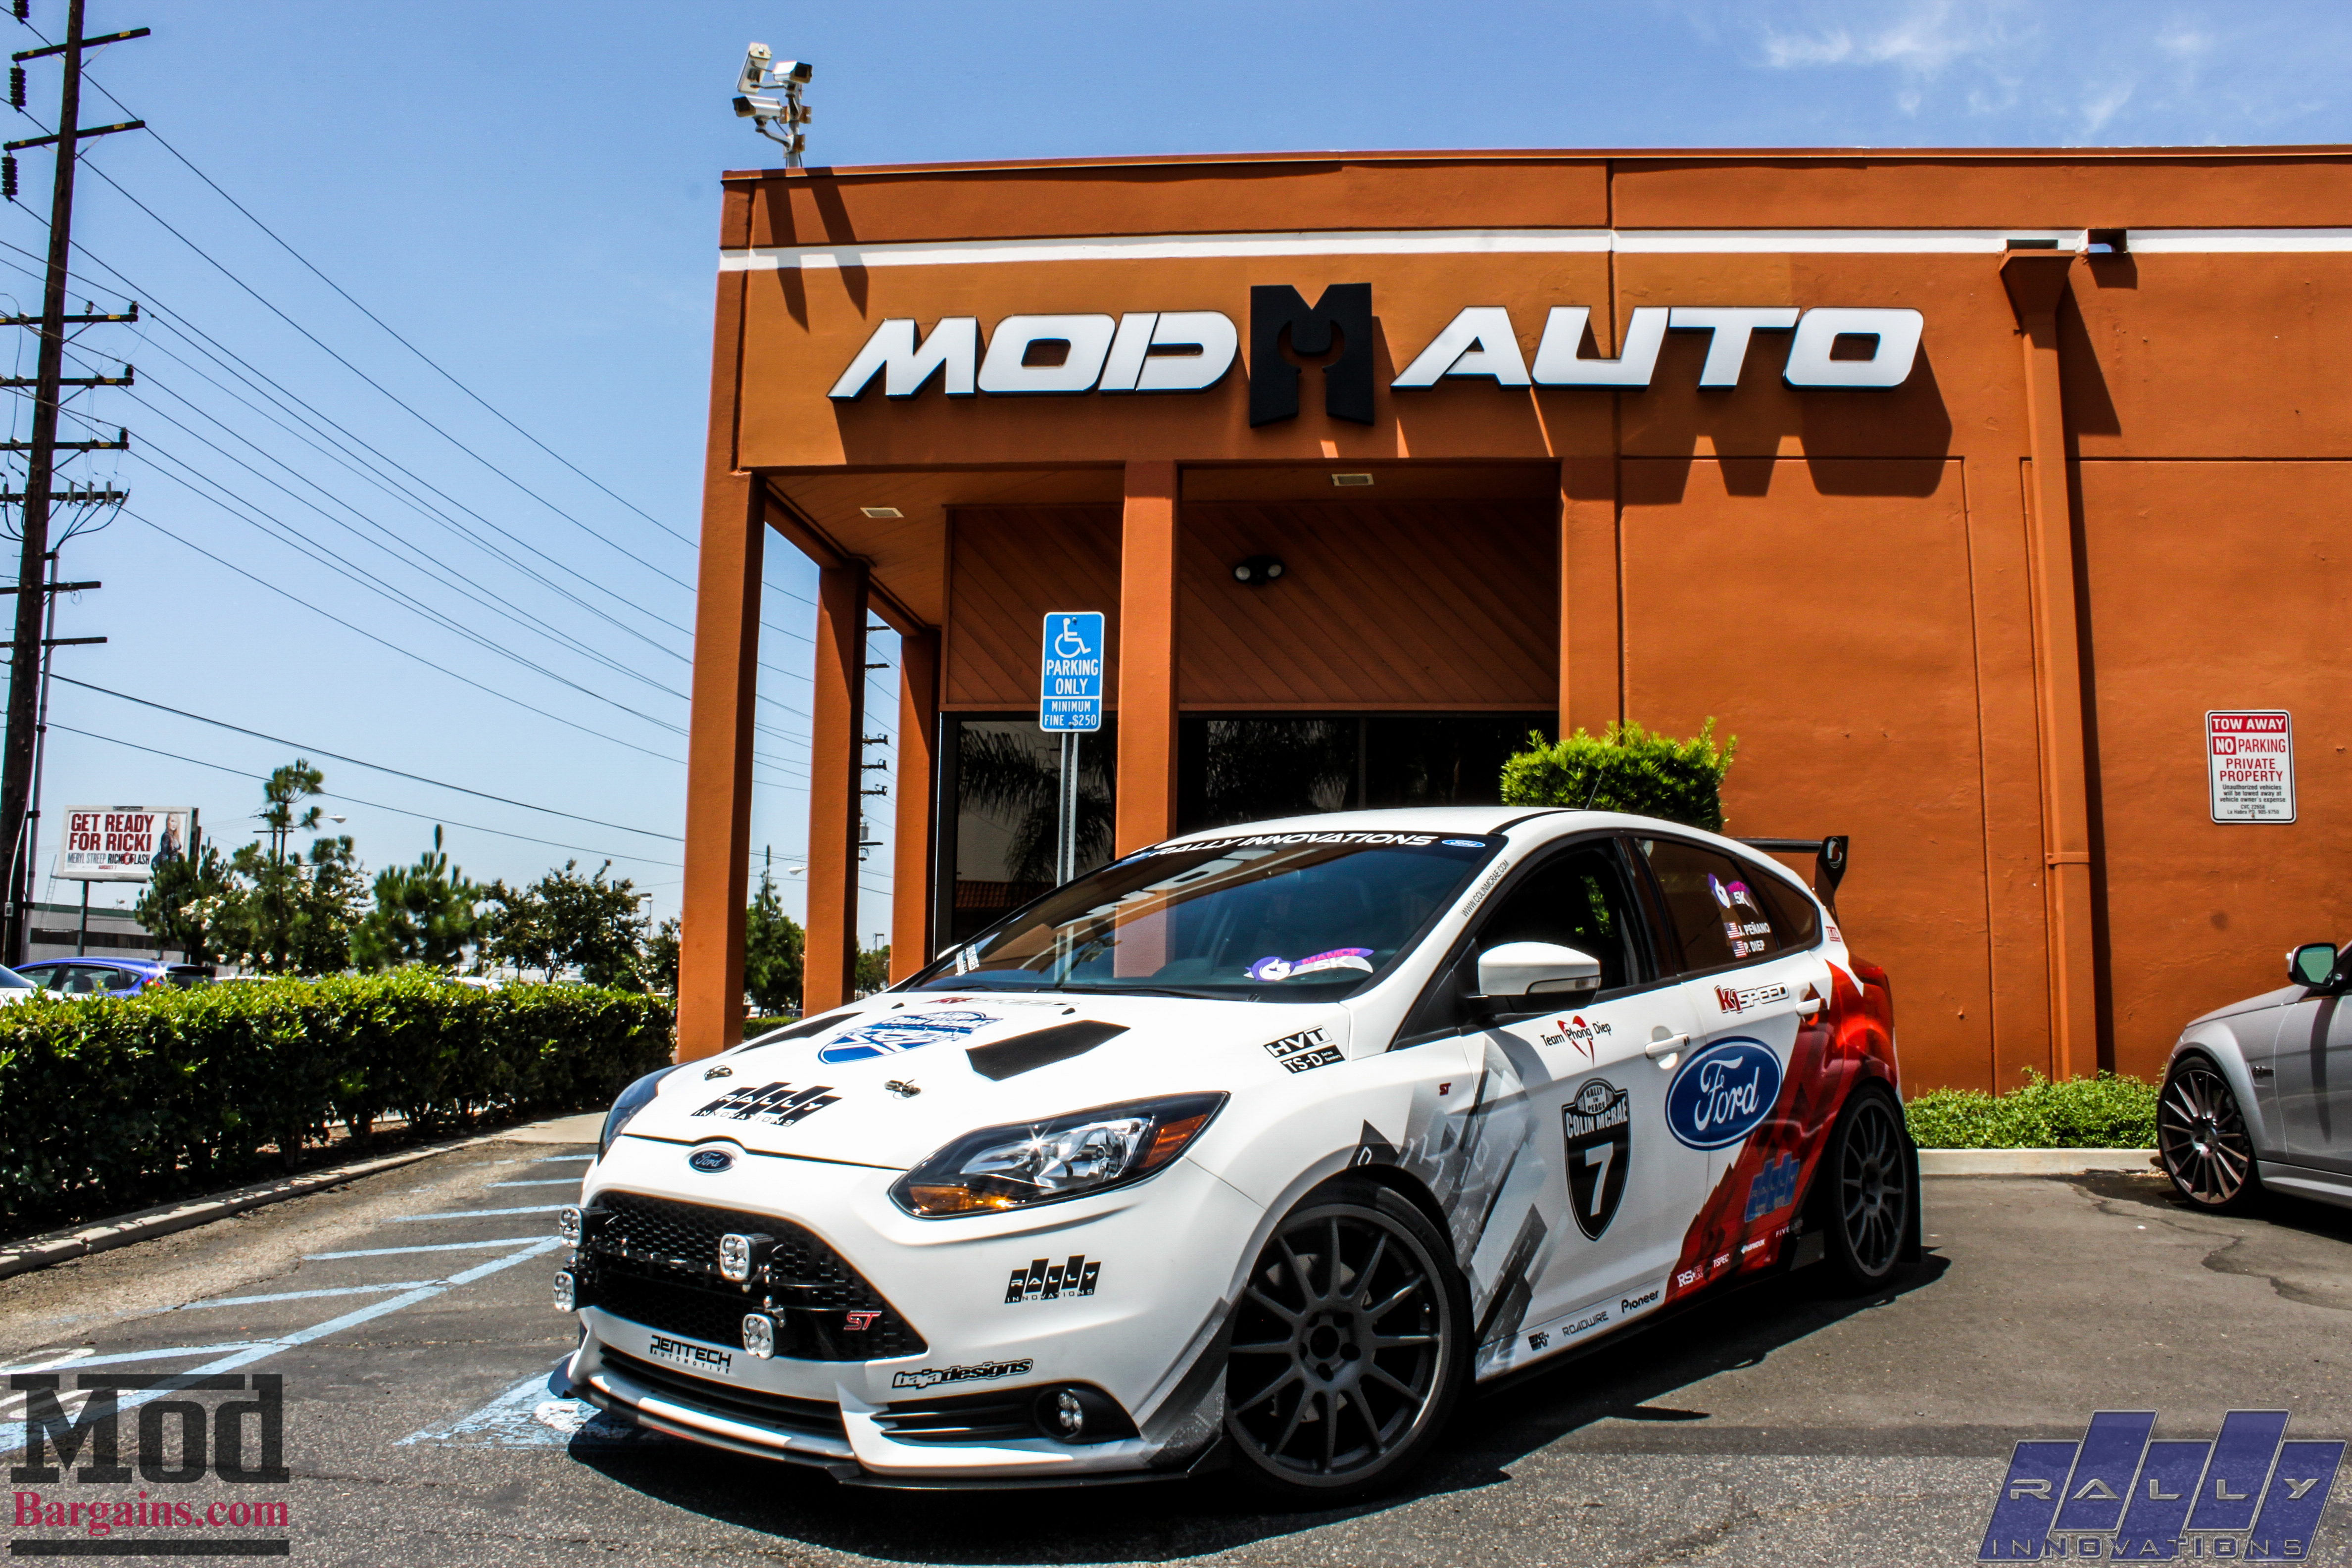 rally x modded focus st visits modauto w video. Black Bedroom Furniture Sets. Home Design Ideas